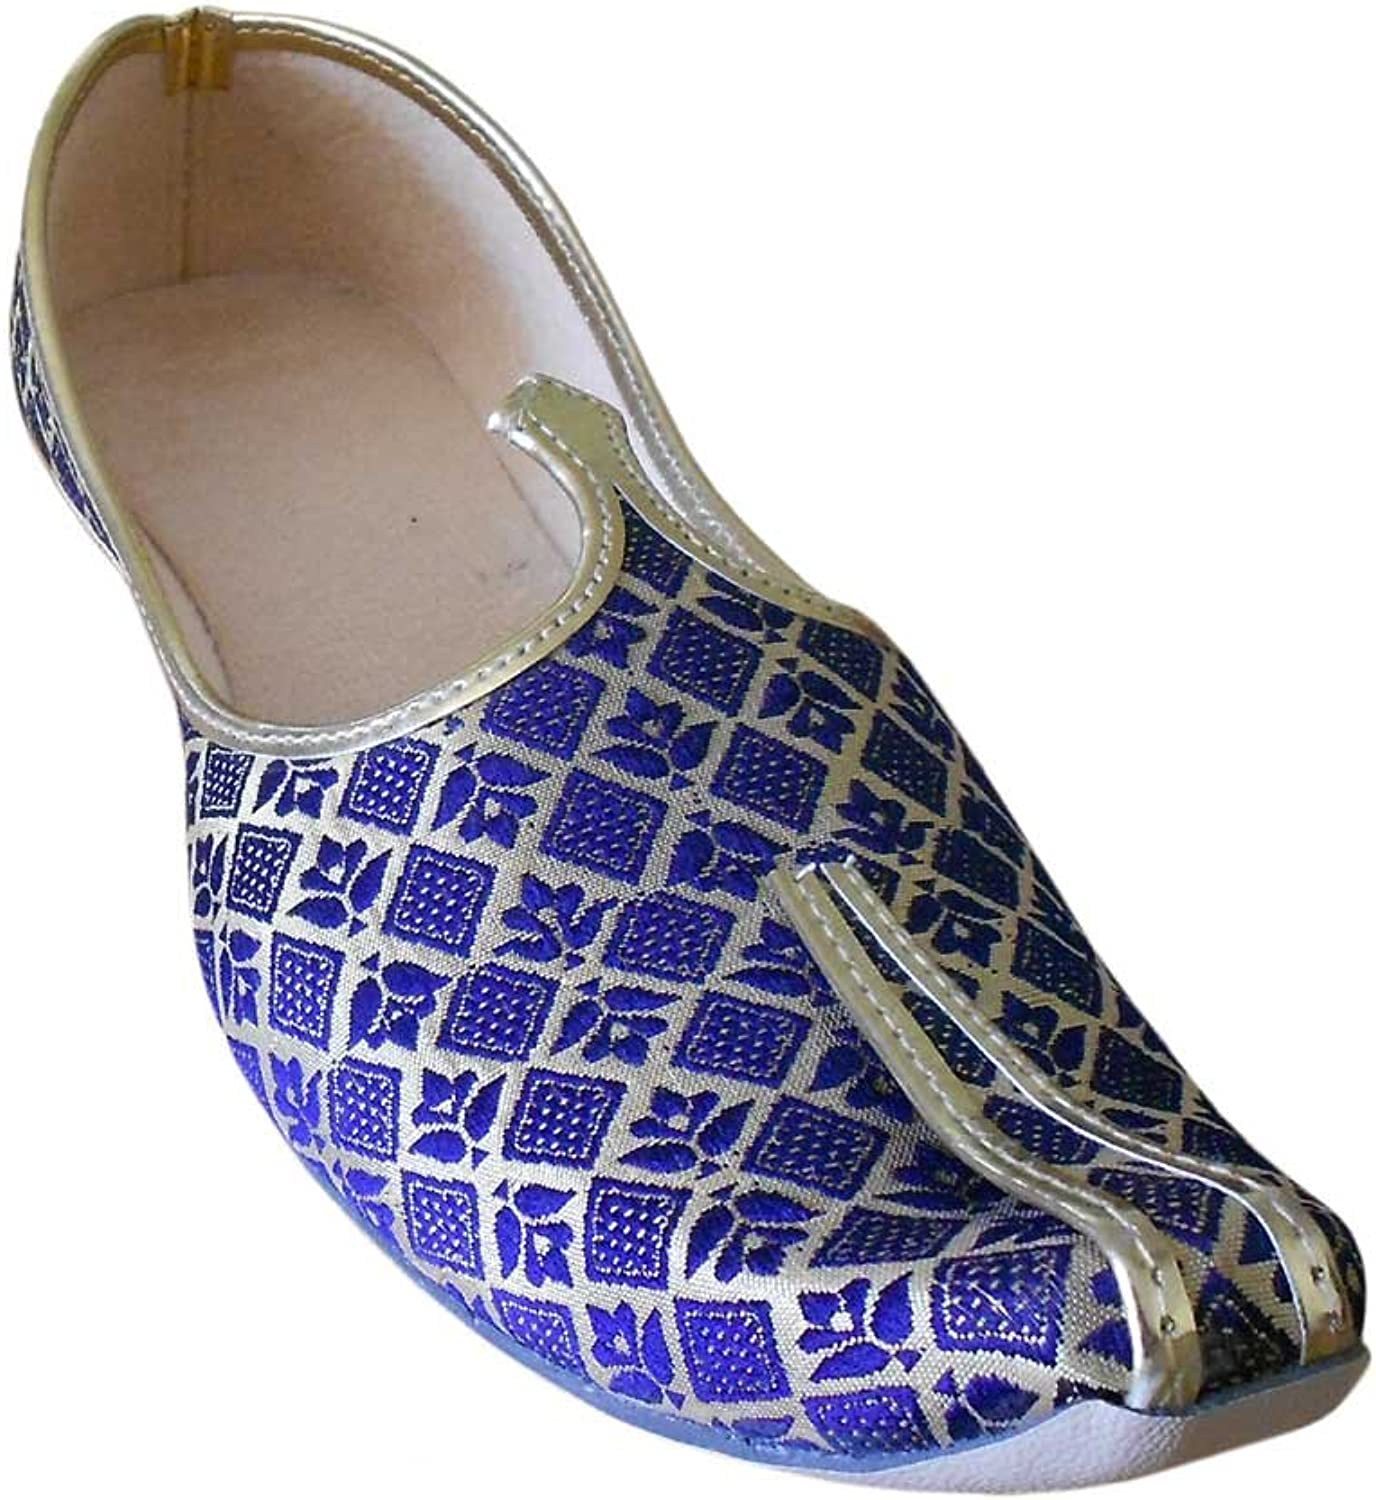 Kalra Creations Men's Traditional Indian Wedding Mojari shoes